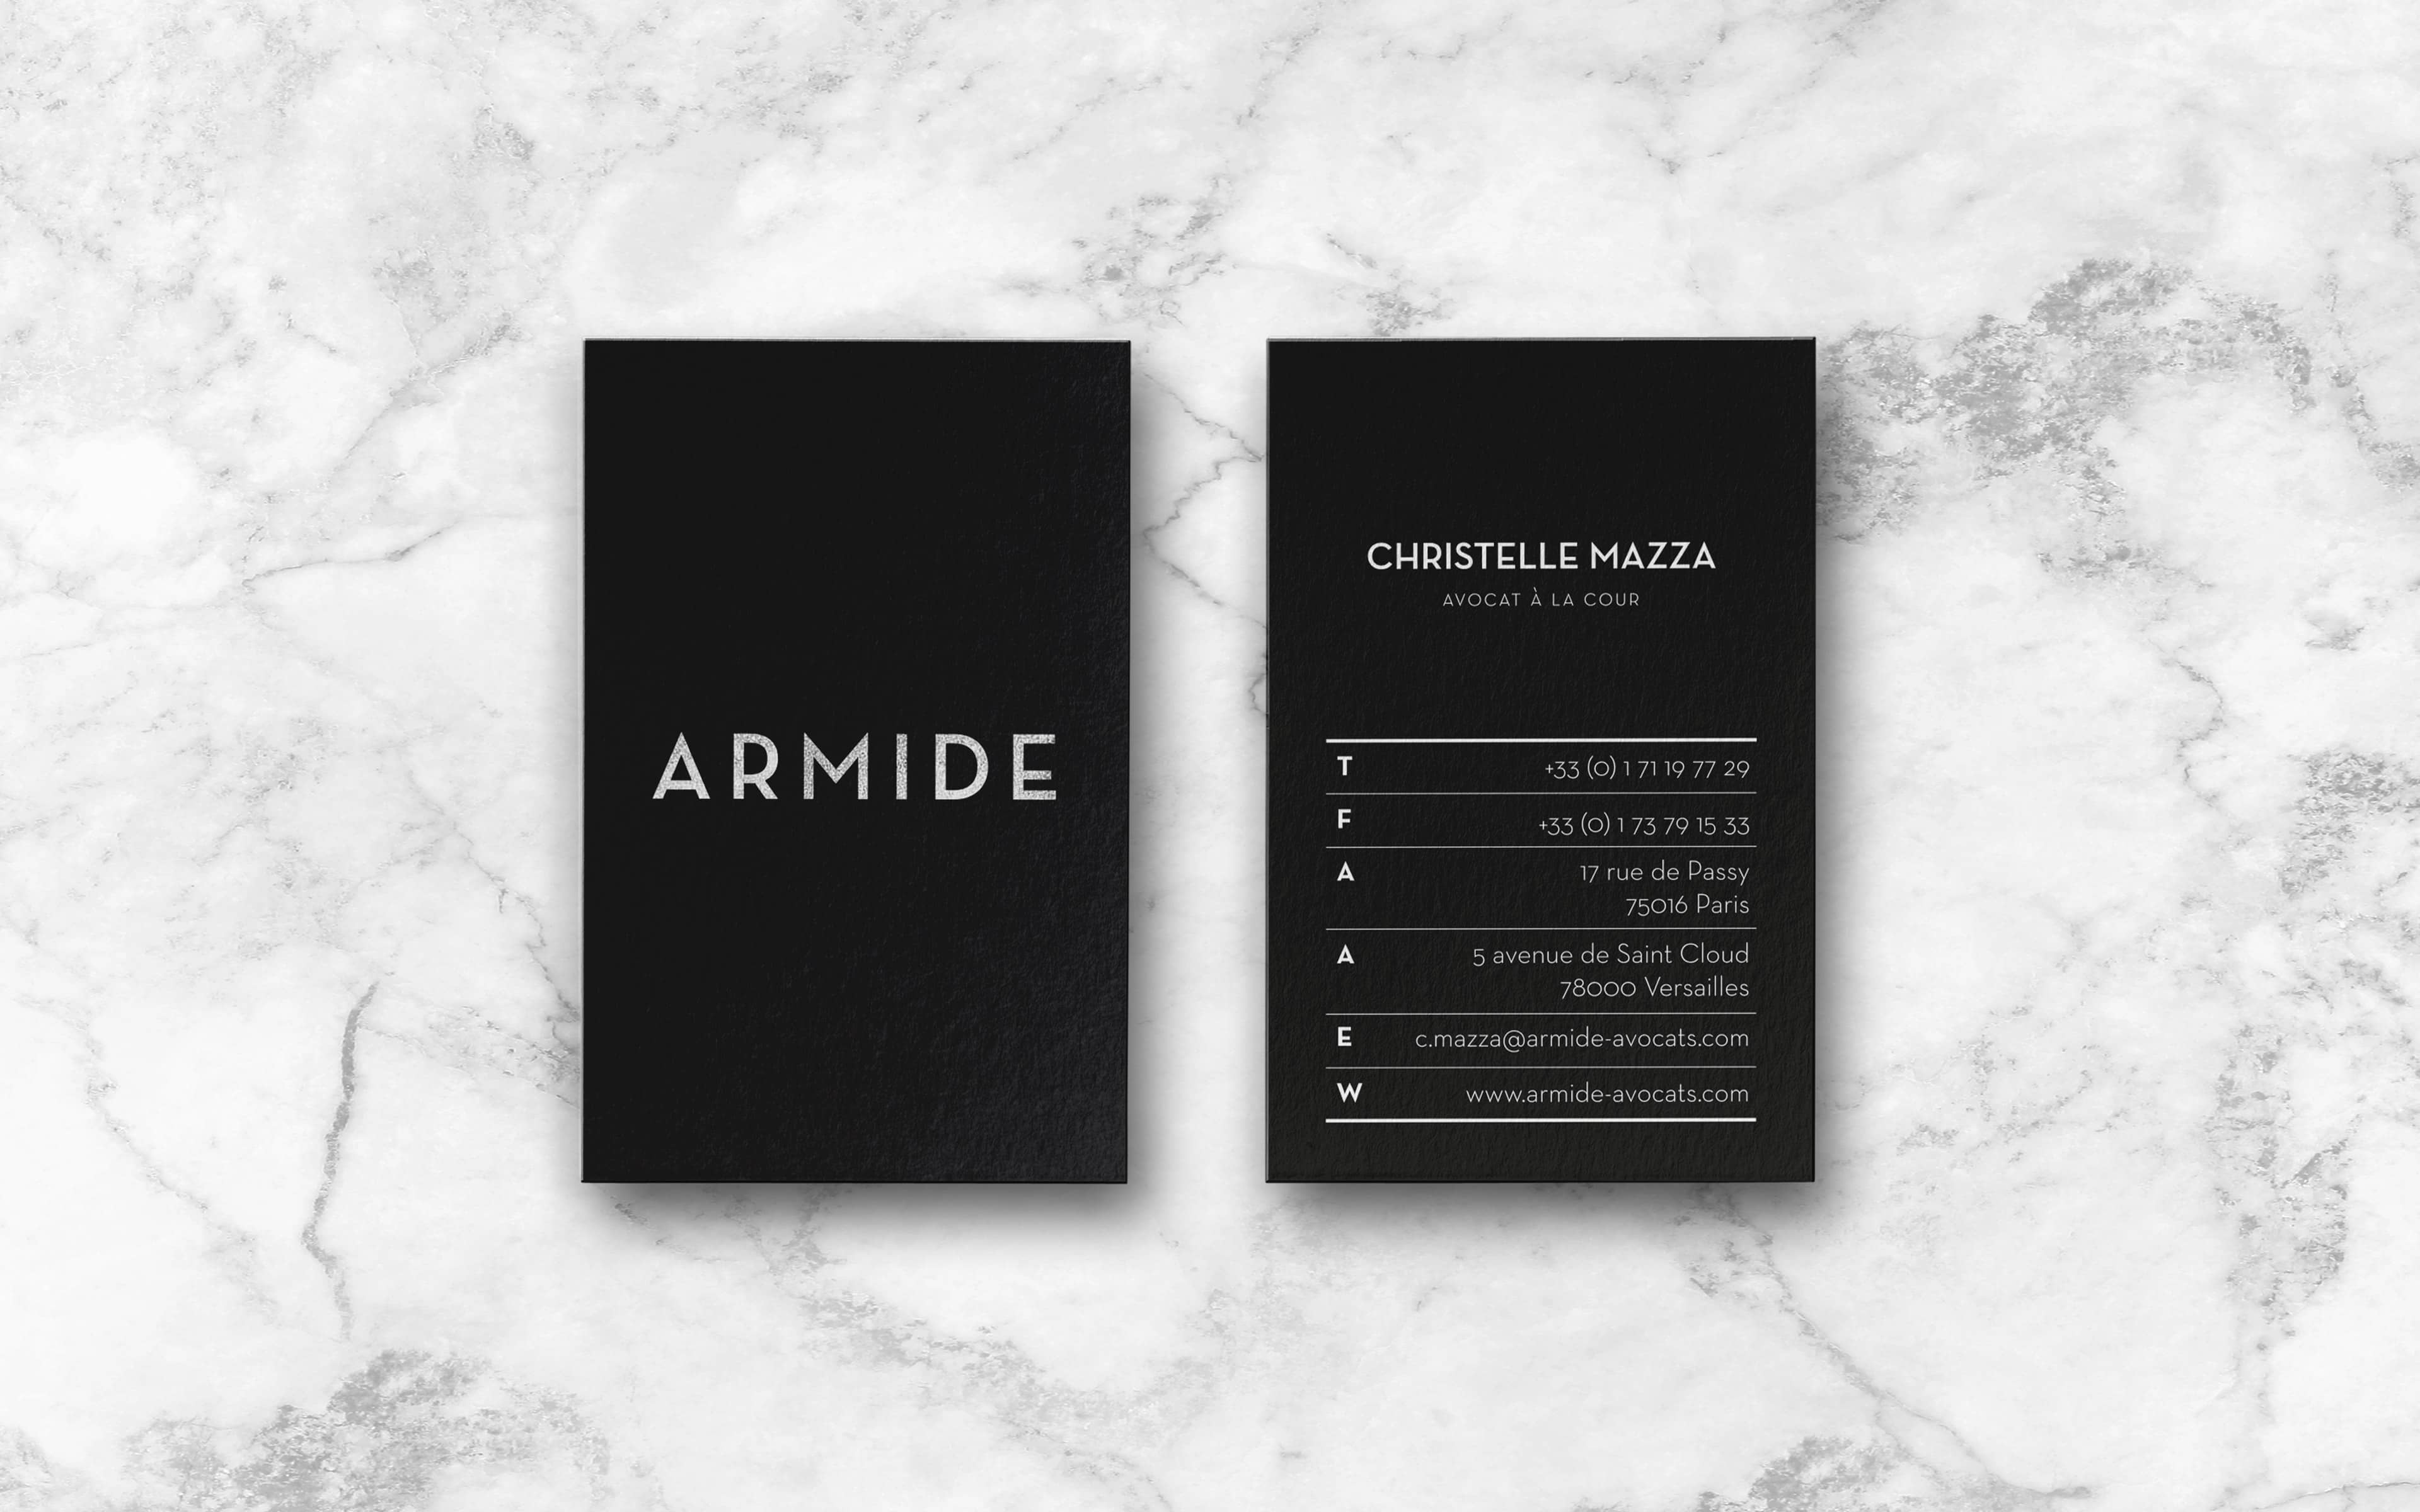 Armide Avocats. Name. Design Agency.